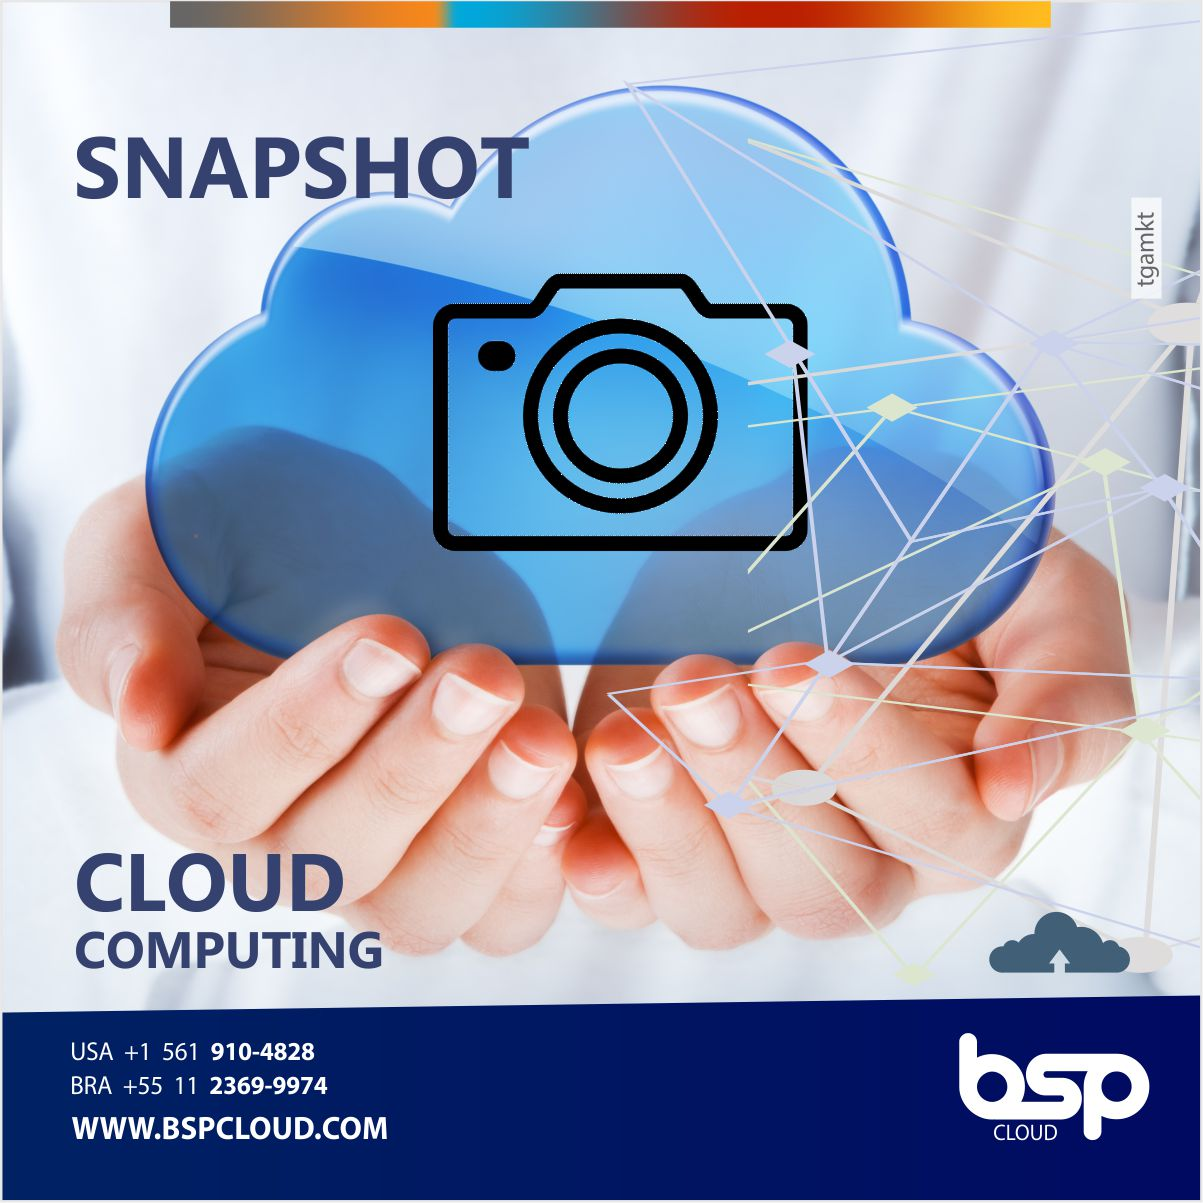 Snapshot – BSP Cloud